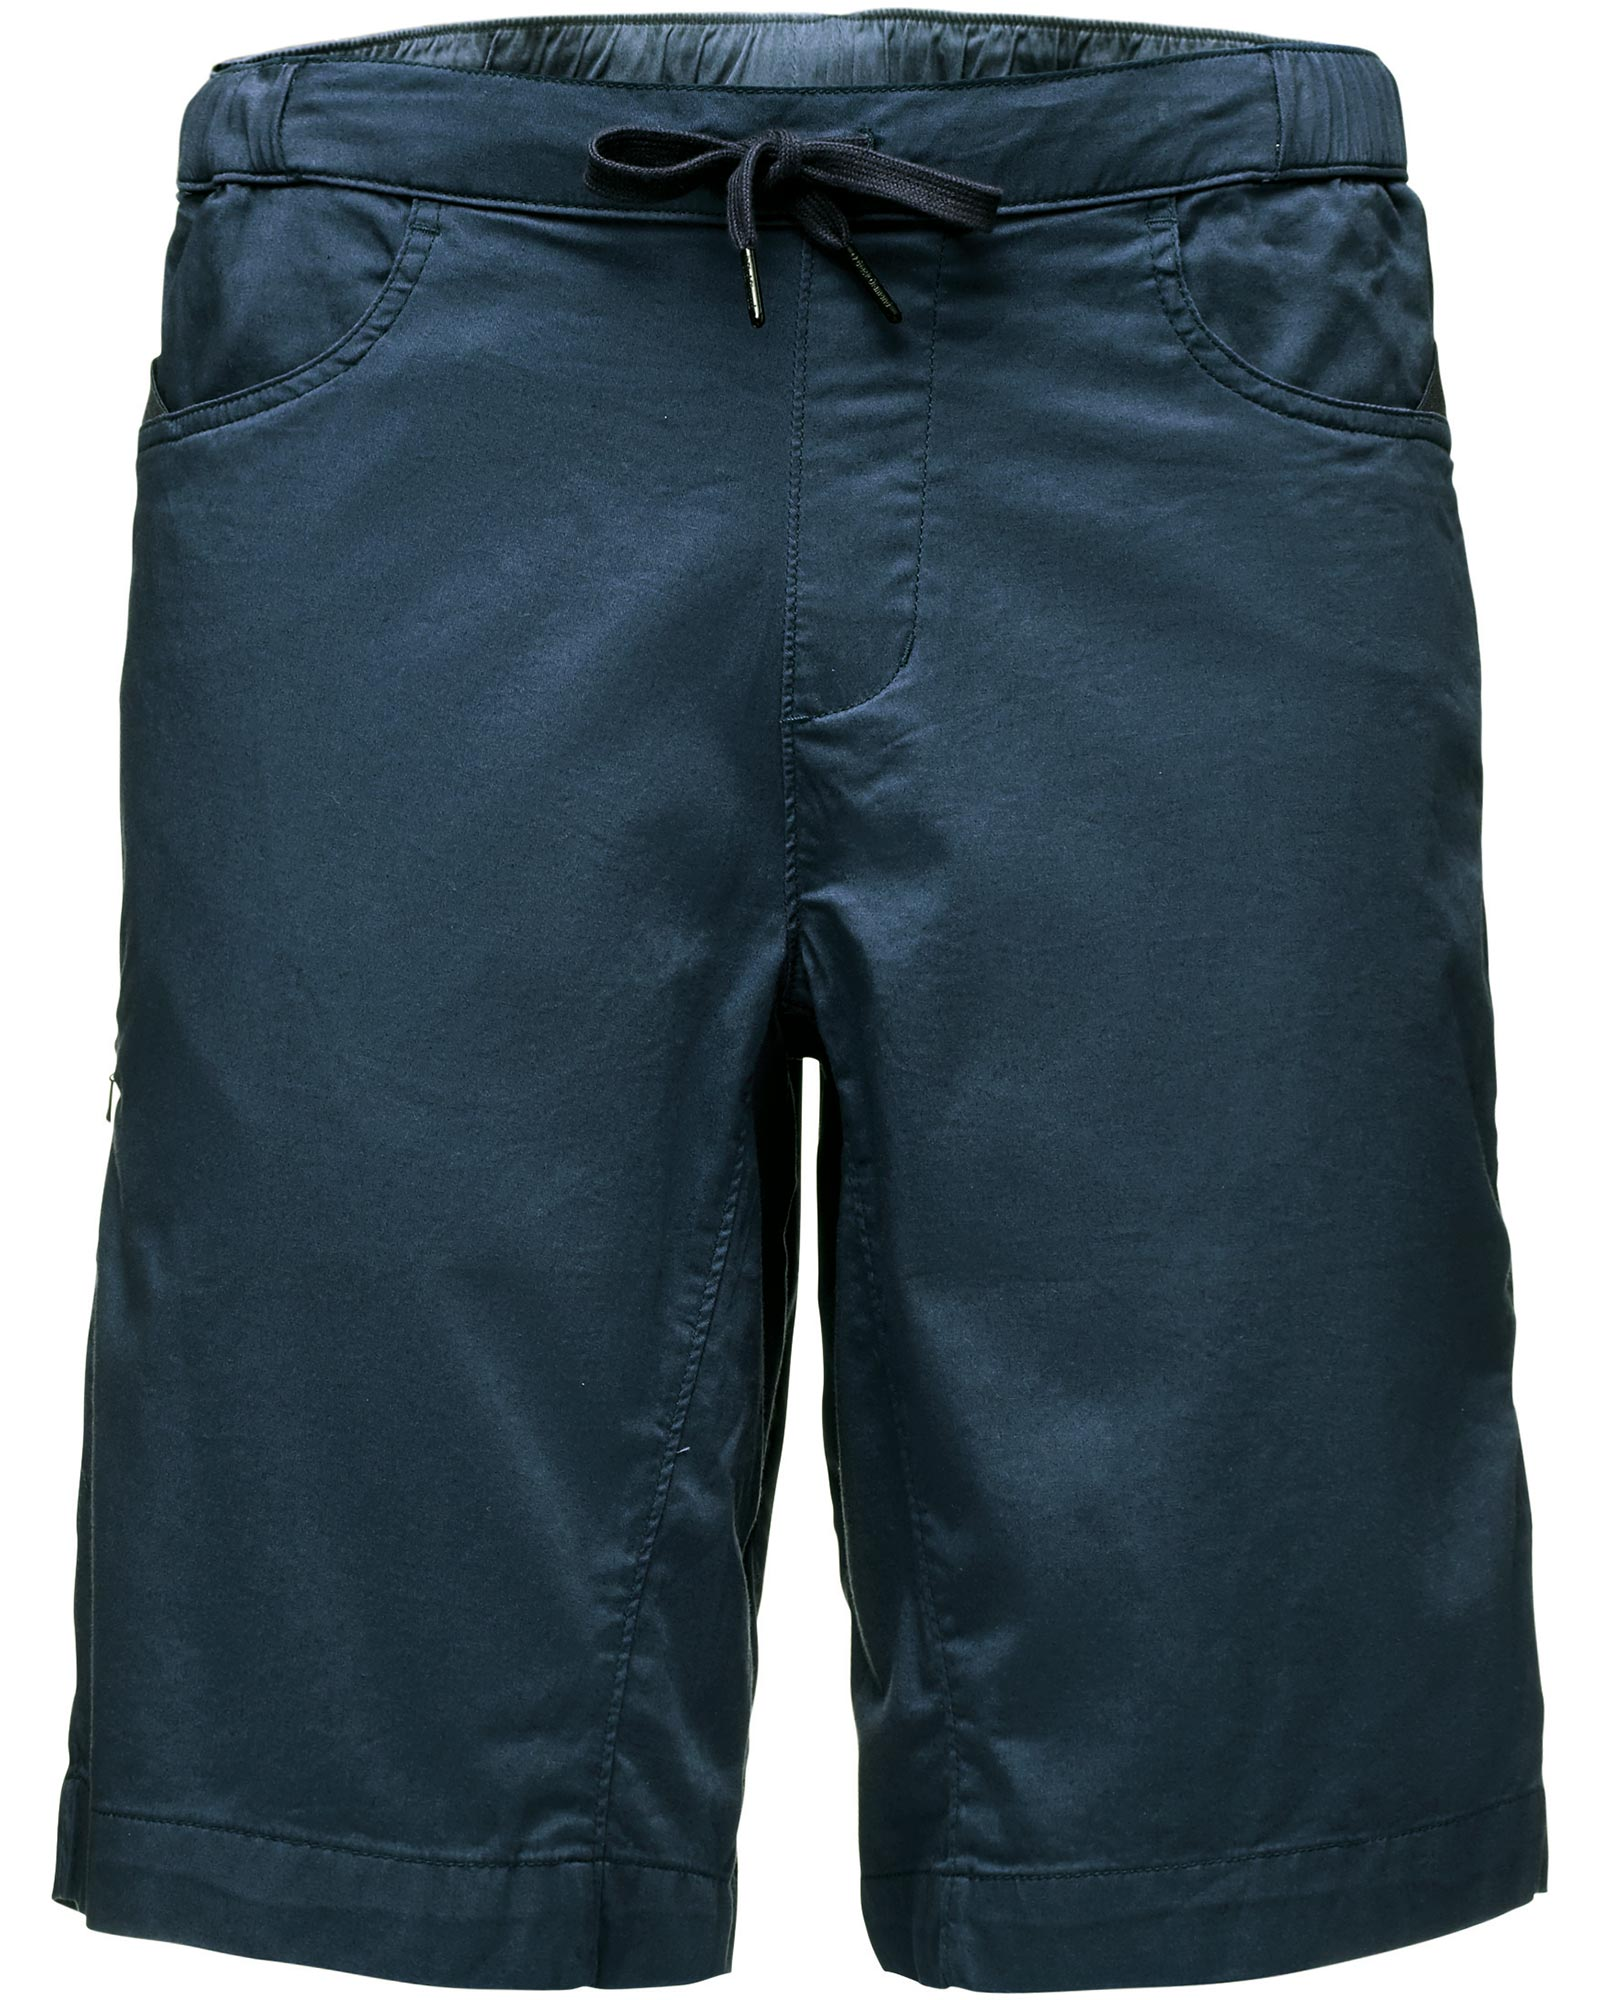 Black Diamond Men's Notion Shorts 0